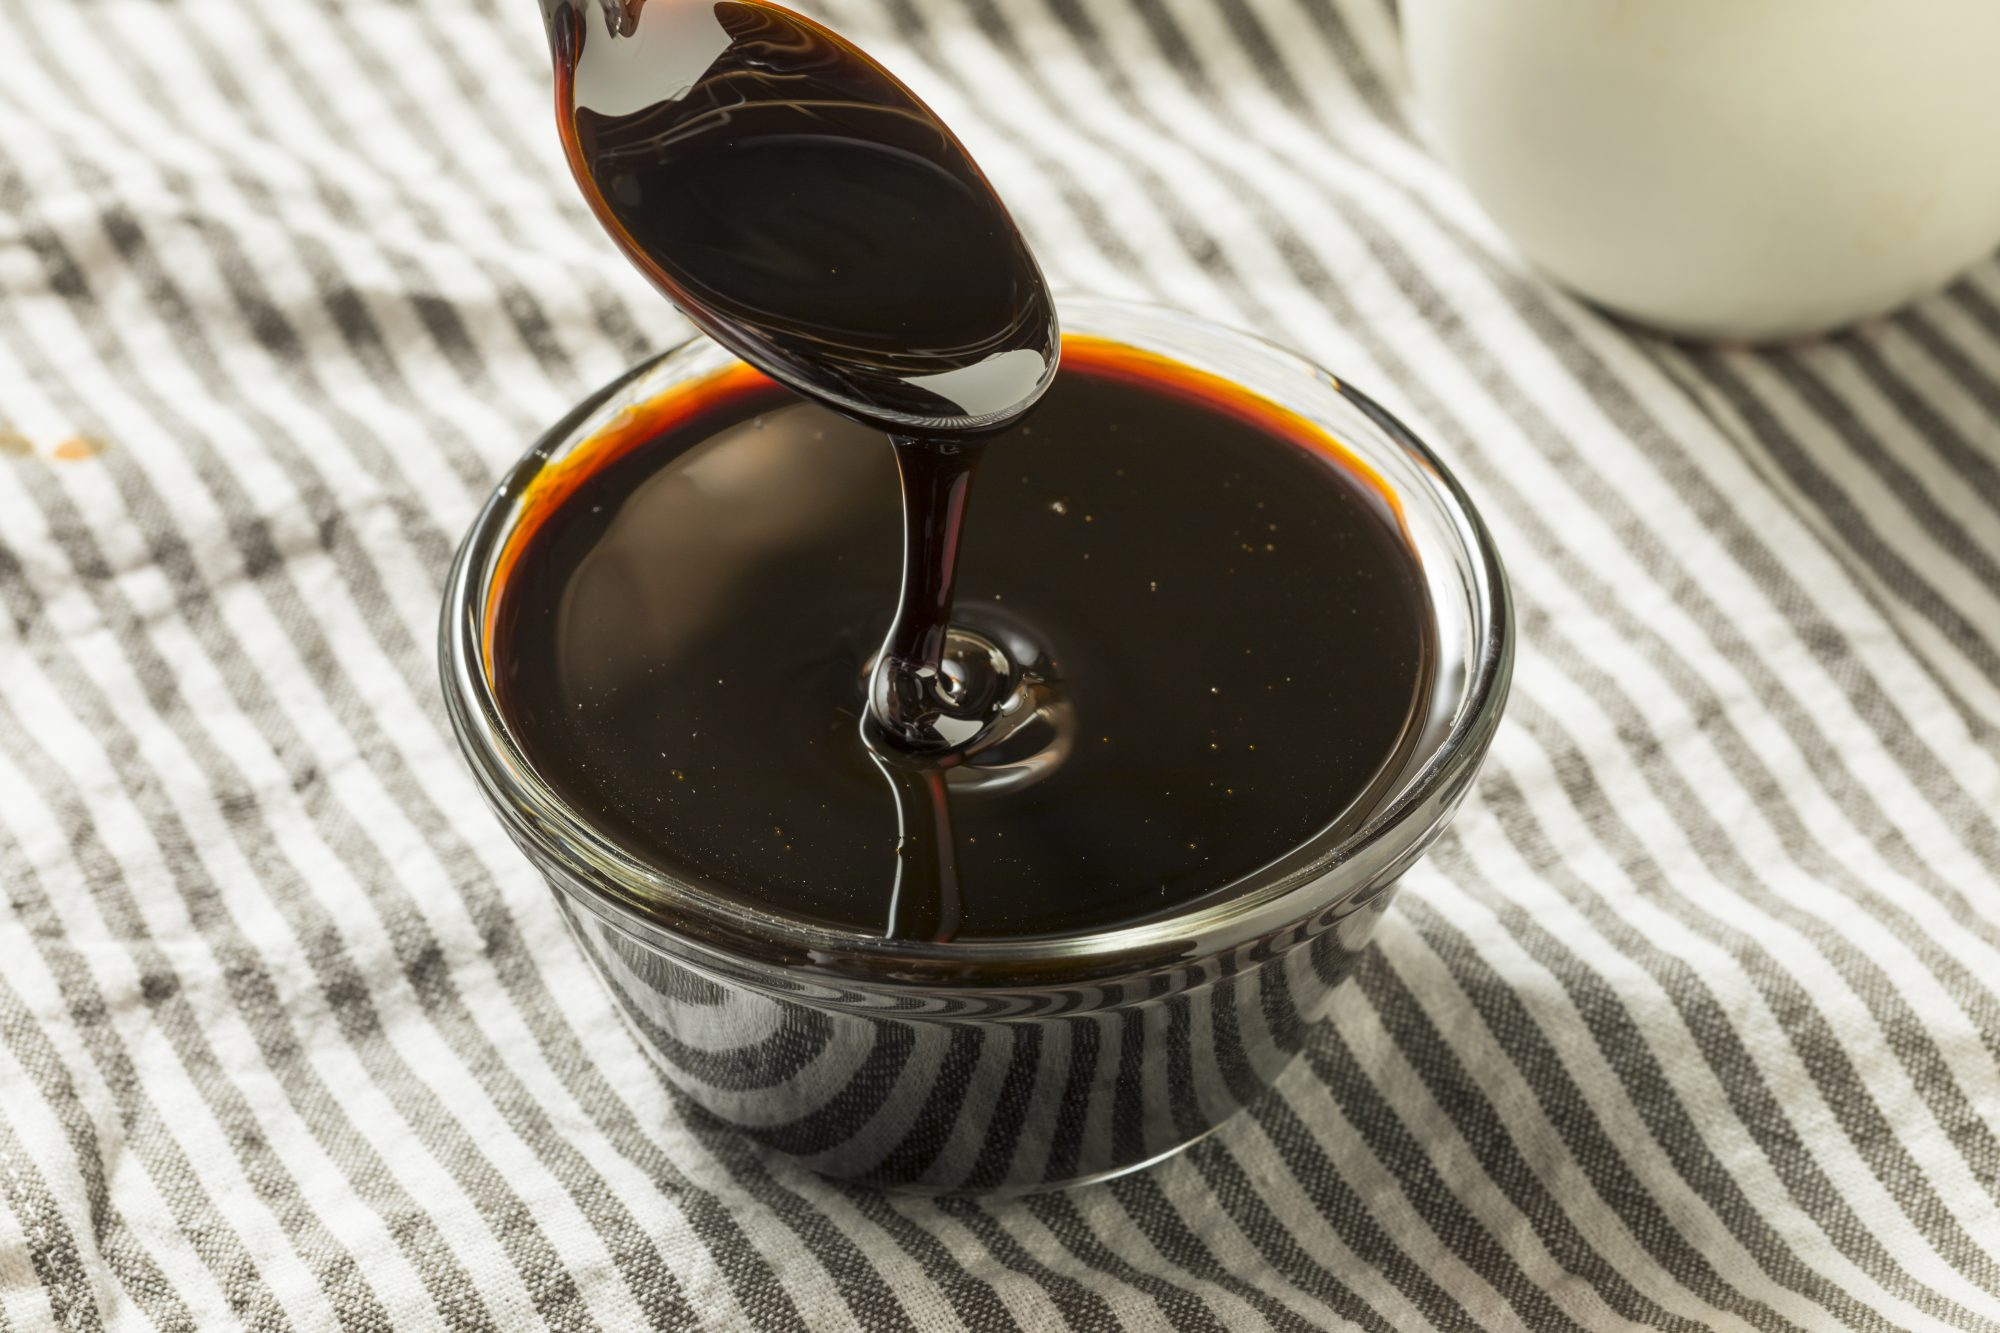 How Is Blackstrap Molasses Different from Other Molasses?